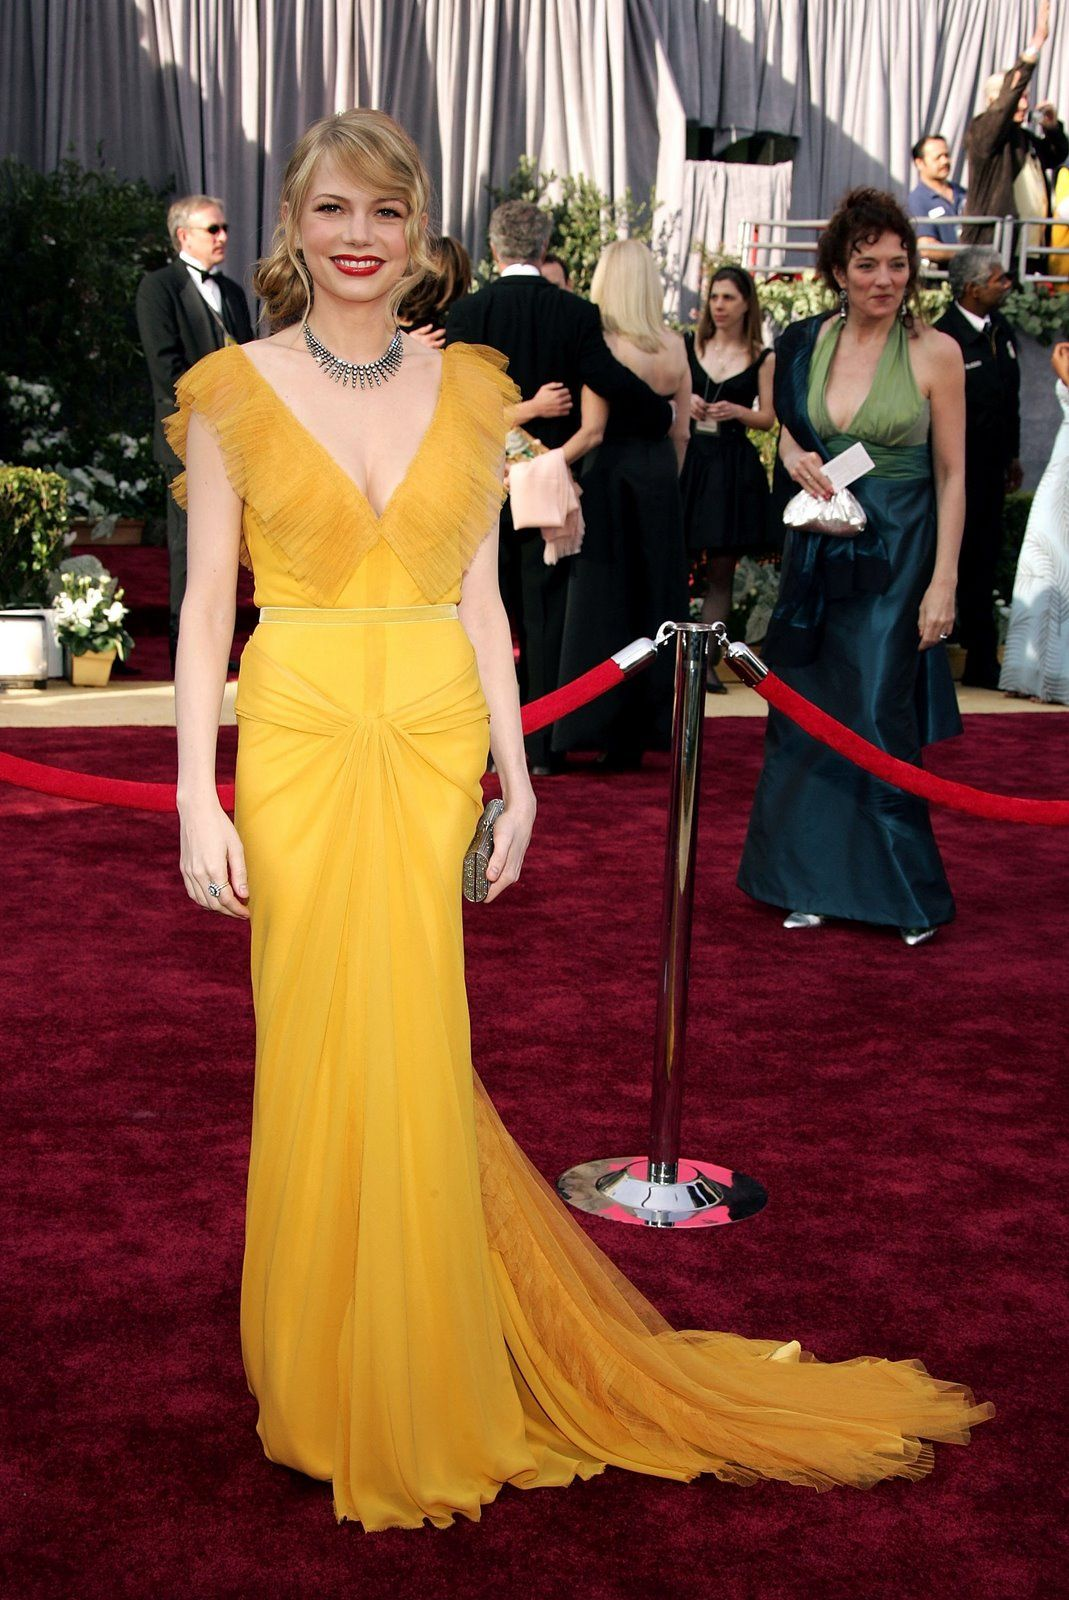 Michelle Williams 78th Oscars Dress Designed By Vera Wang Constructed Of Chiffon And Tulle Cosmopolitan Magazine Said Coupled With The Bright Red Lips